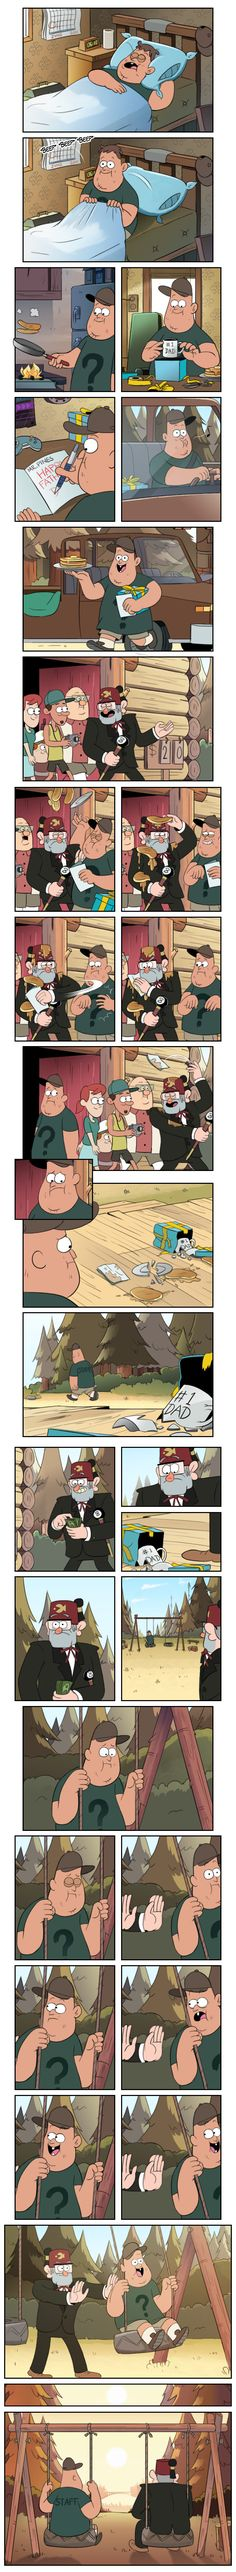 Father figure (Gravity Falls fans?). (Comic by Markmak) - 9GAG